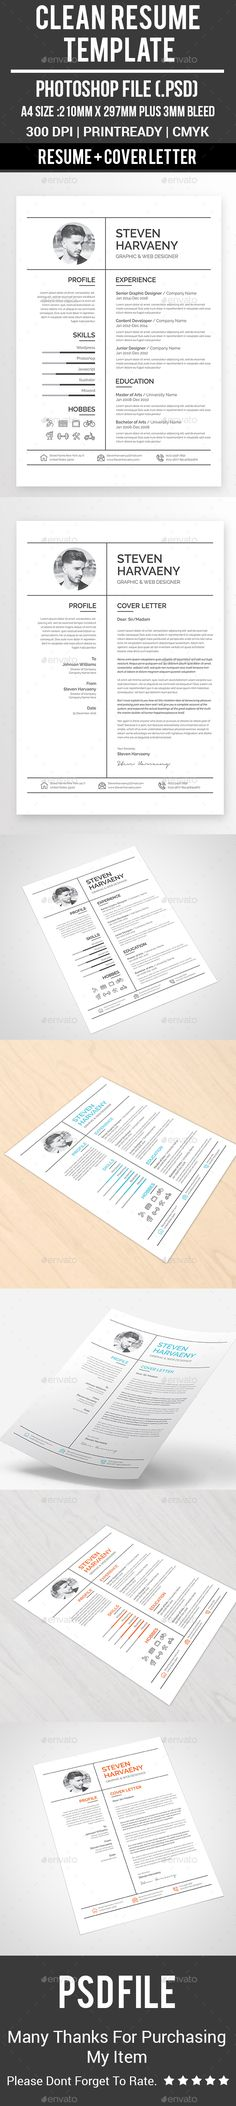 gareth case digital resume3gif 372532 pixels marketing